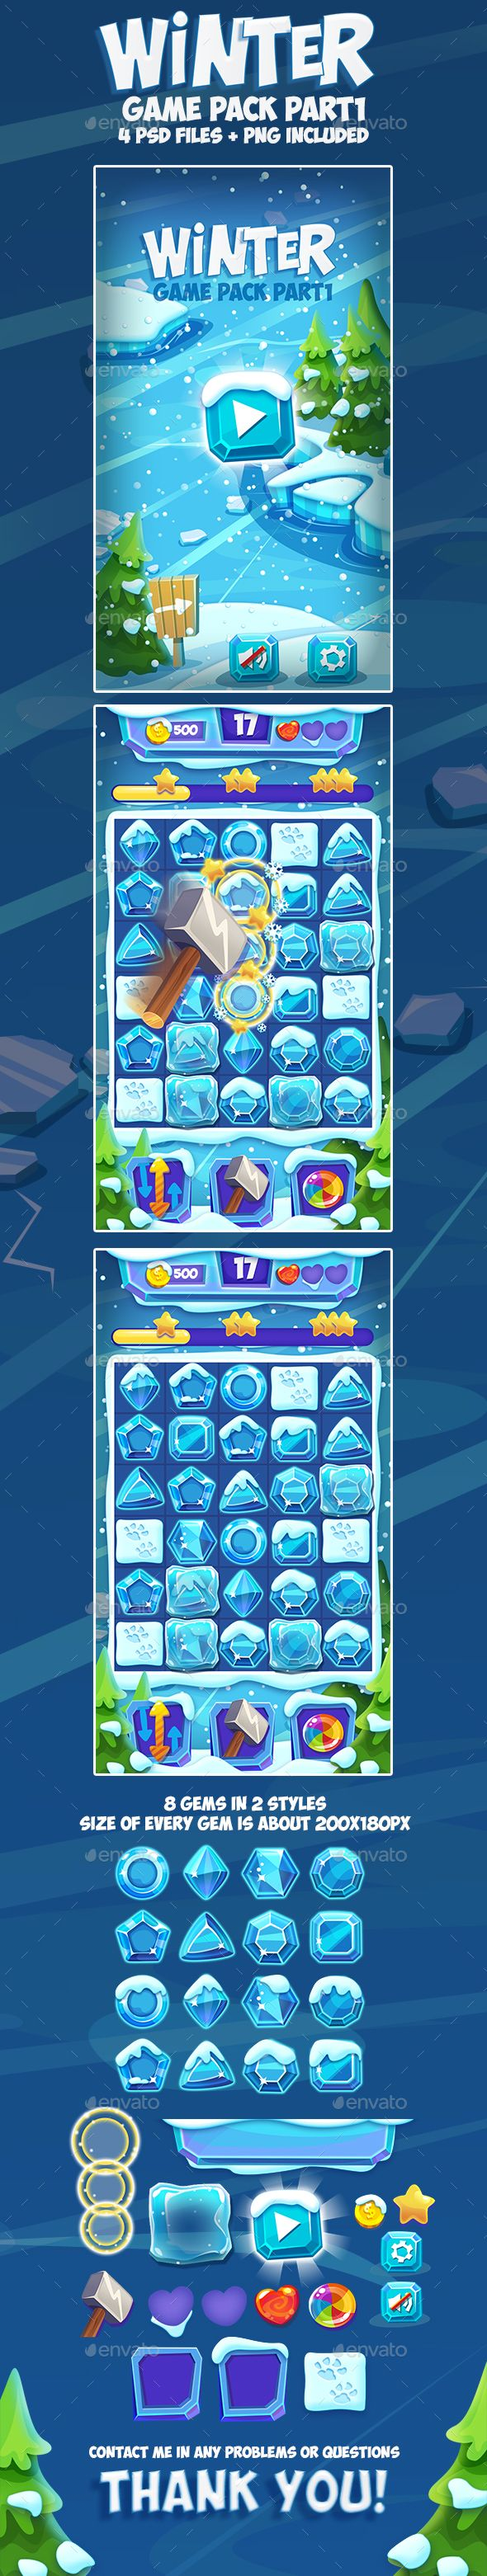 Christmas Winter Frozen Game Pack 1 | Download kit : https://graphicriver.net/item/christmas-winter-frozen-game-pack-1/18837581?ref=sinzo #Game #Kits Game #Assets